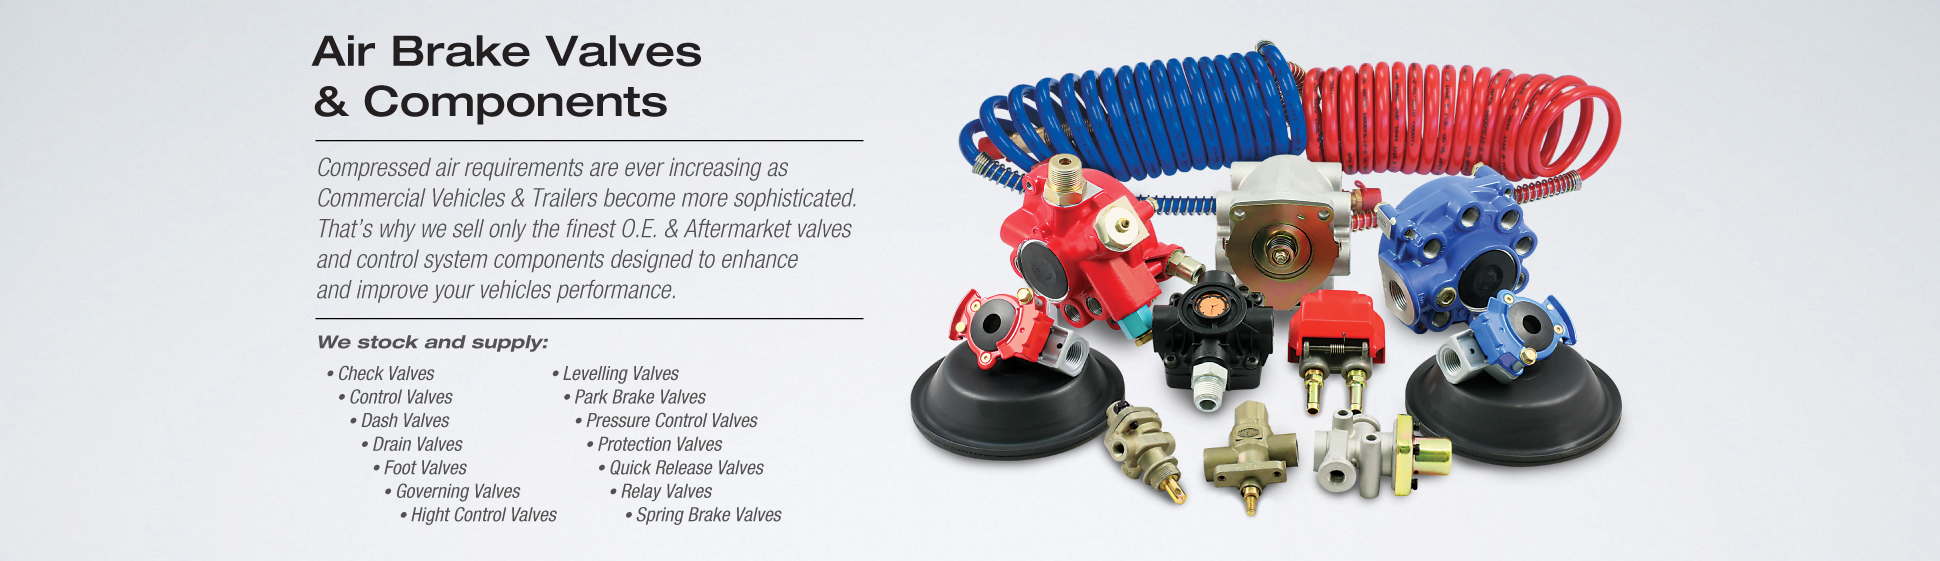 Air Brake Valves Components